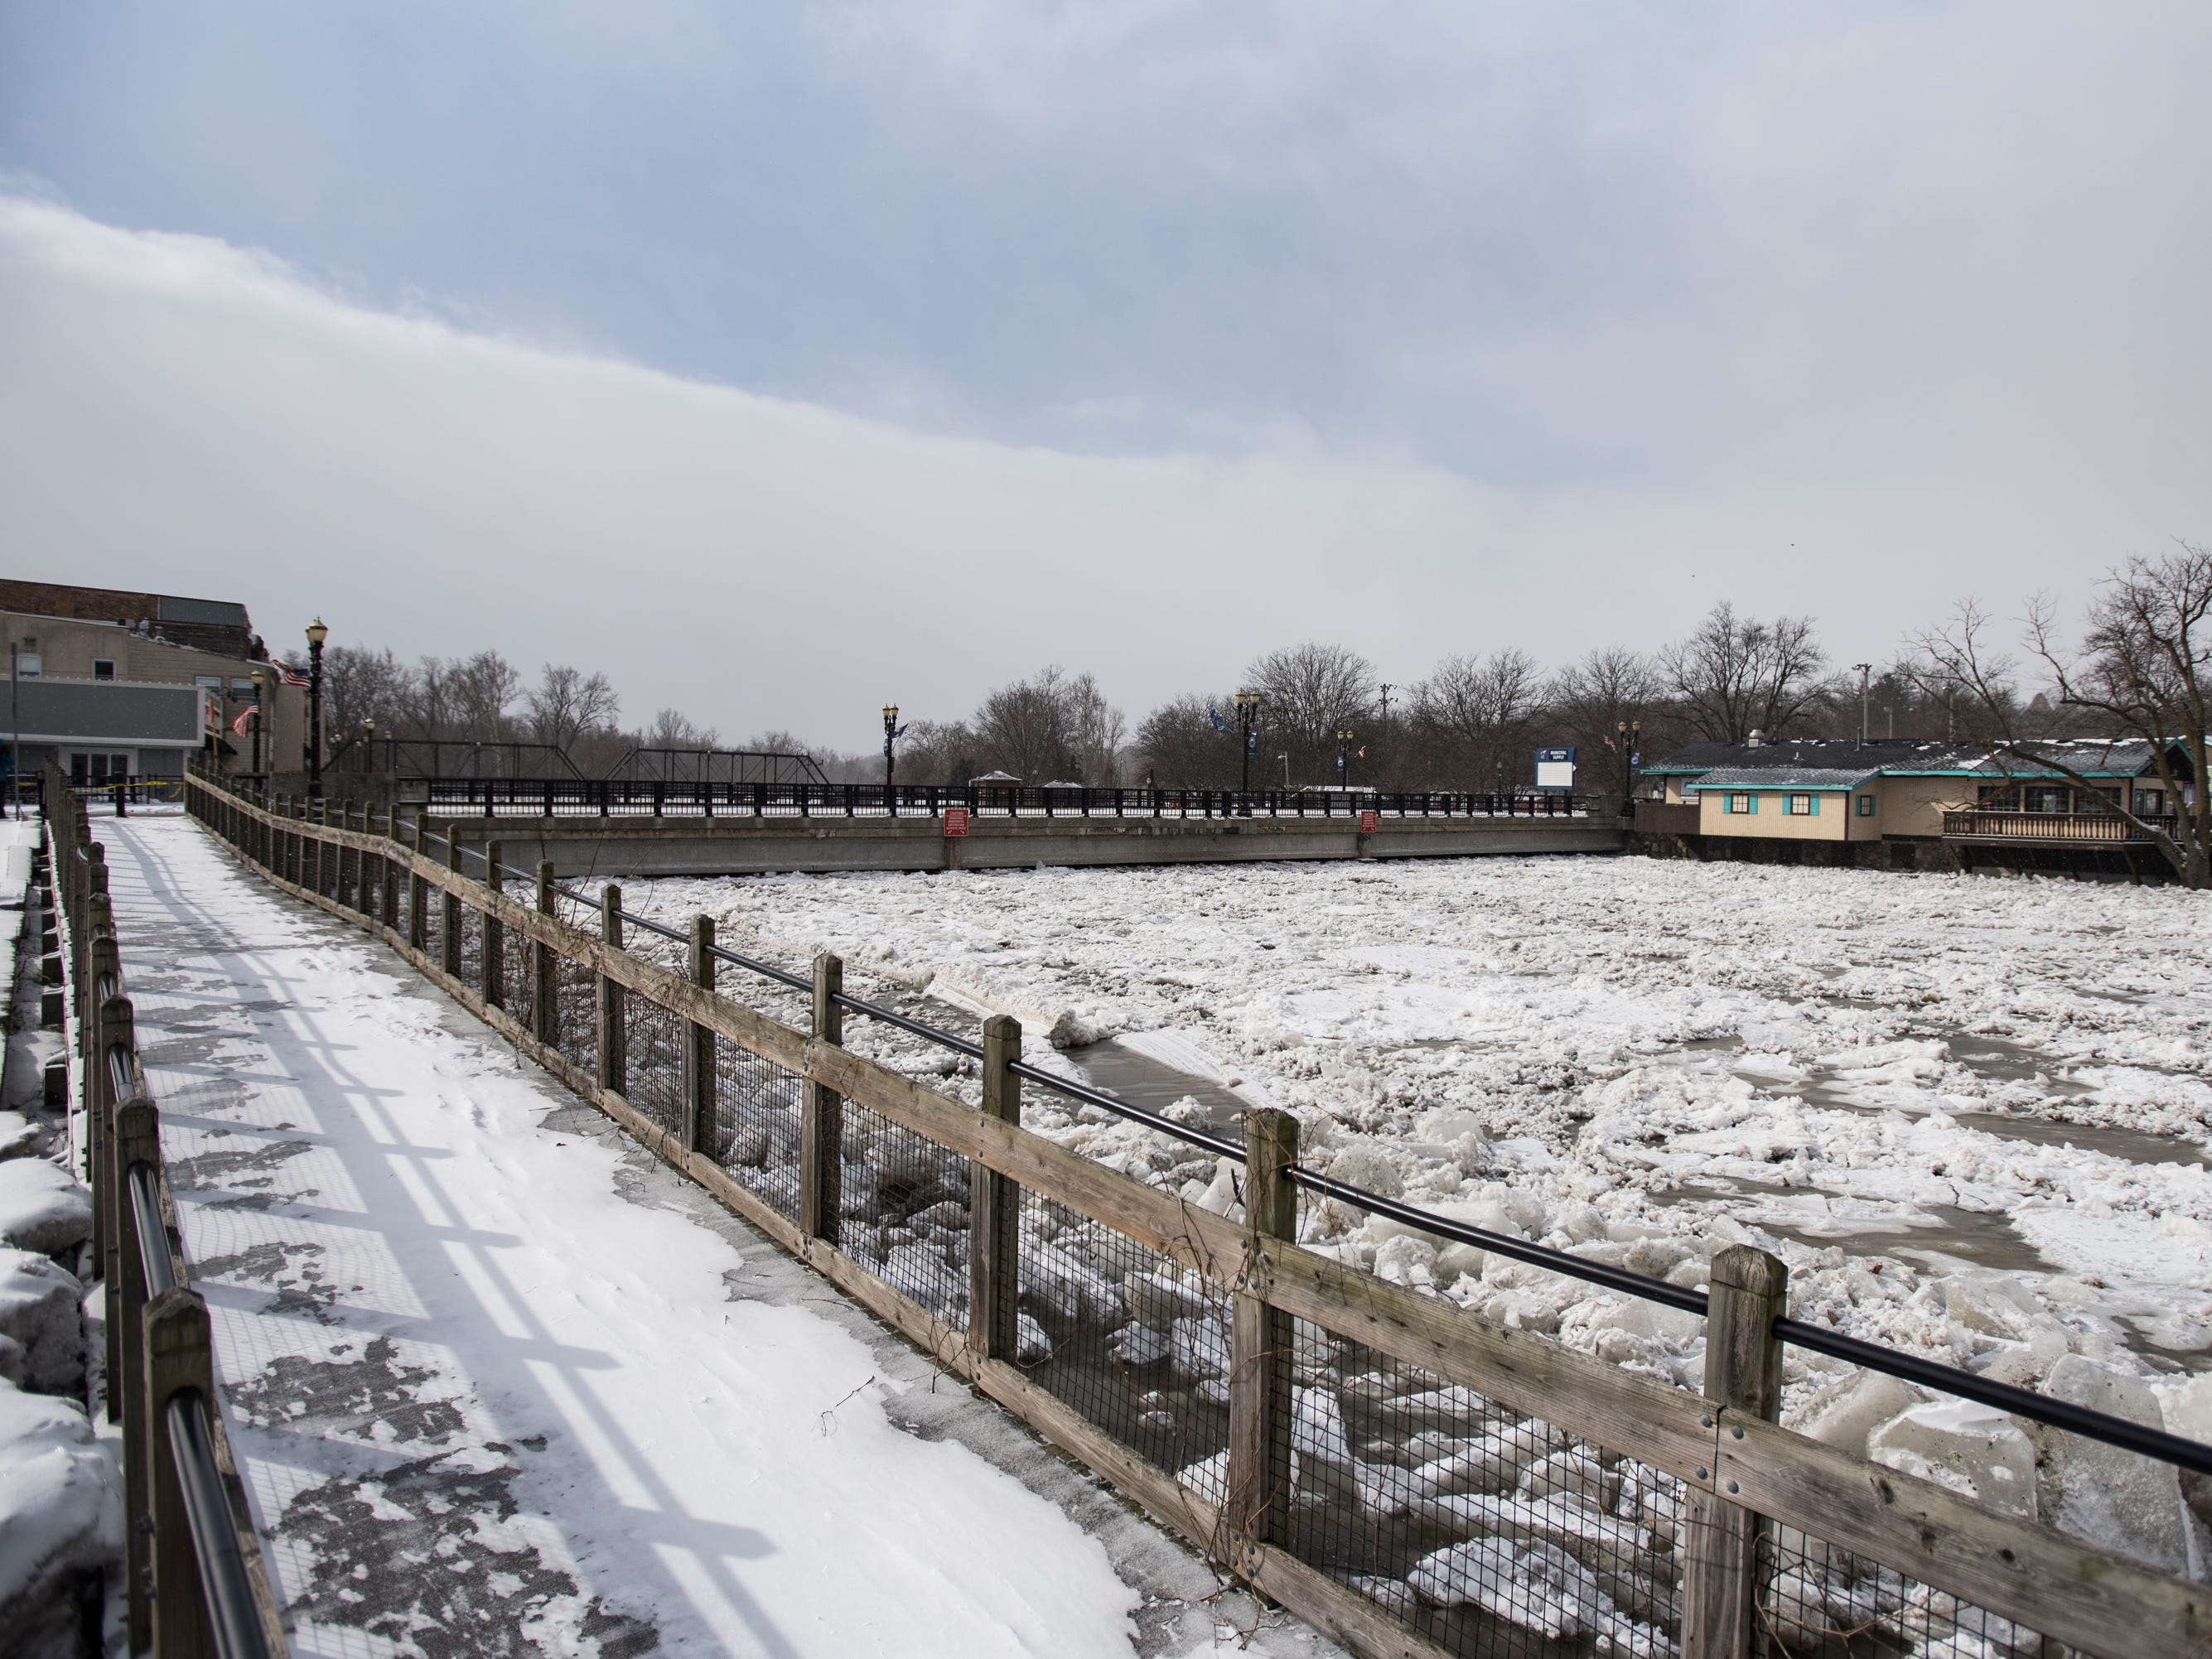 Ice jams can be seen at the bottom of the bridge that was closed Friday, Feb. 8, 2019, in downtown Portland, Michigan. Ice jams and rising waters threaten the integrity of the bridge.